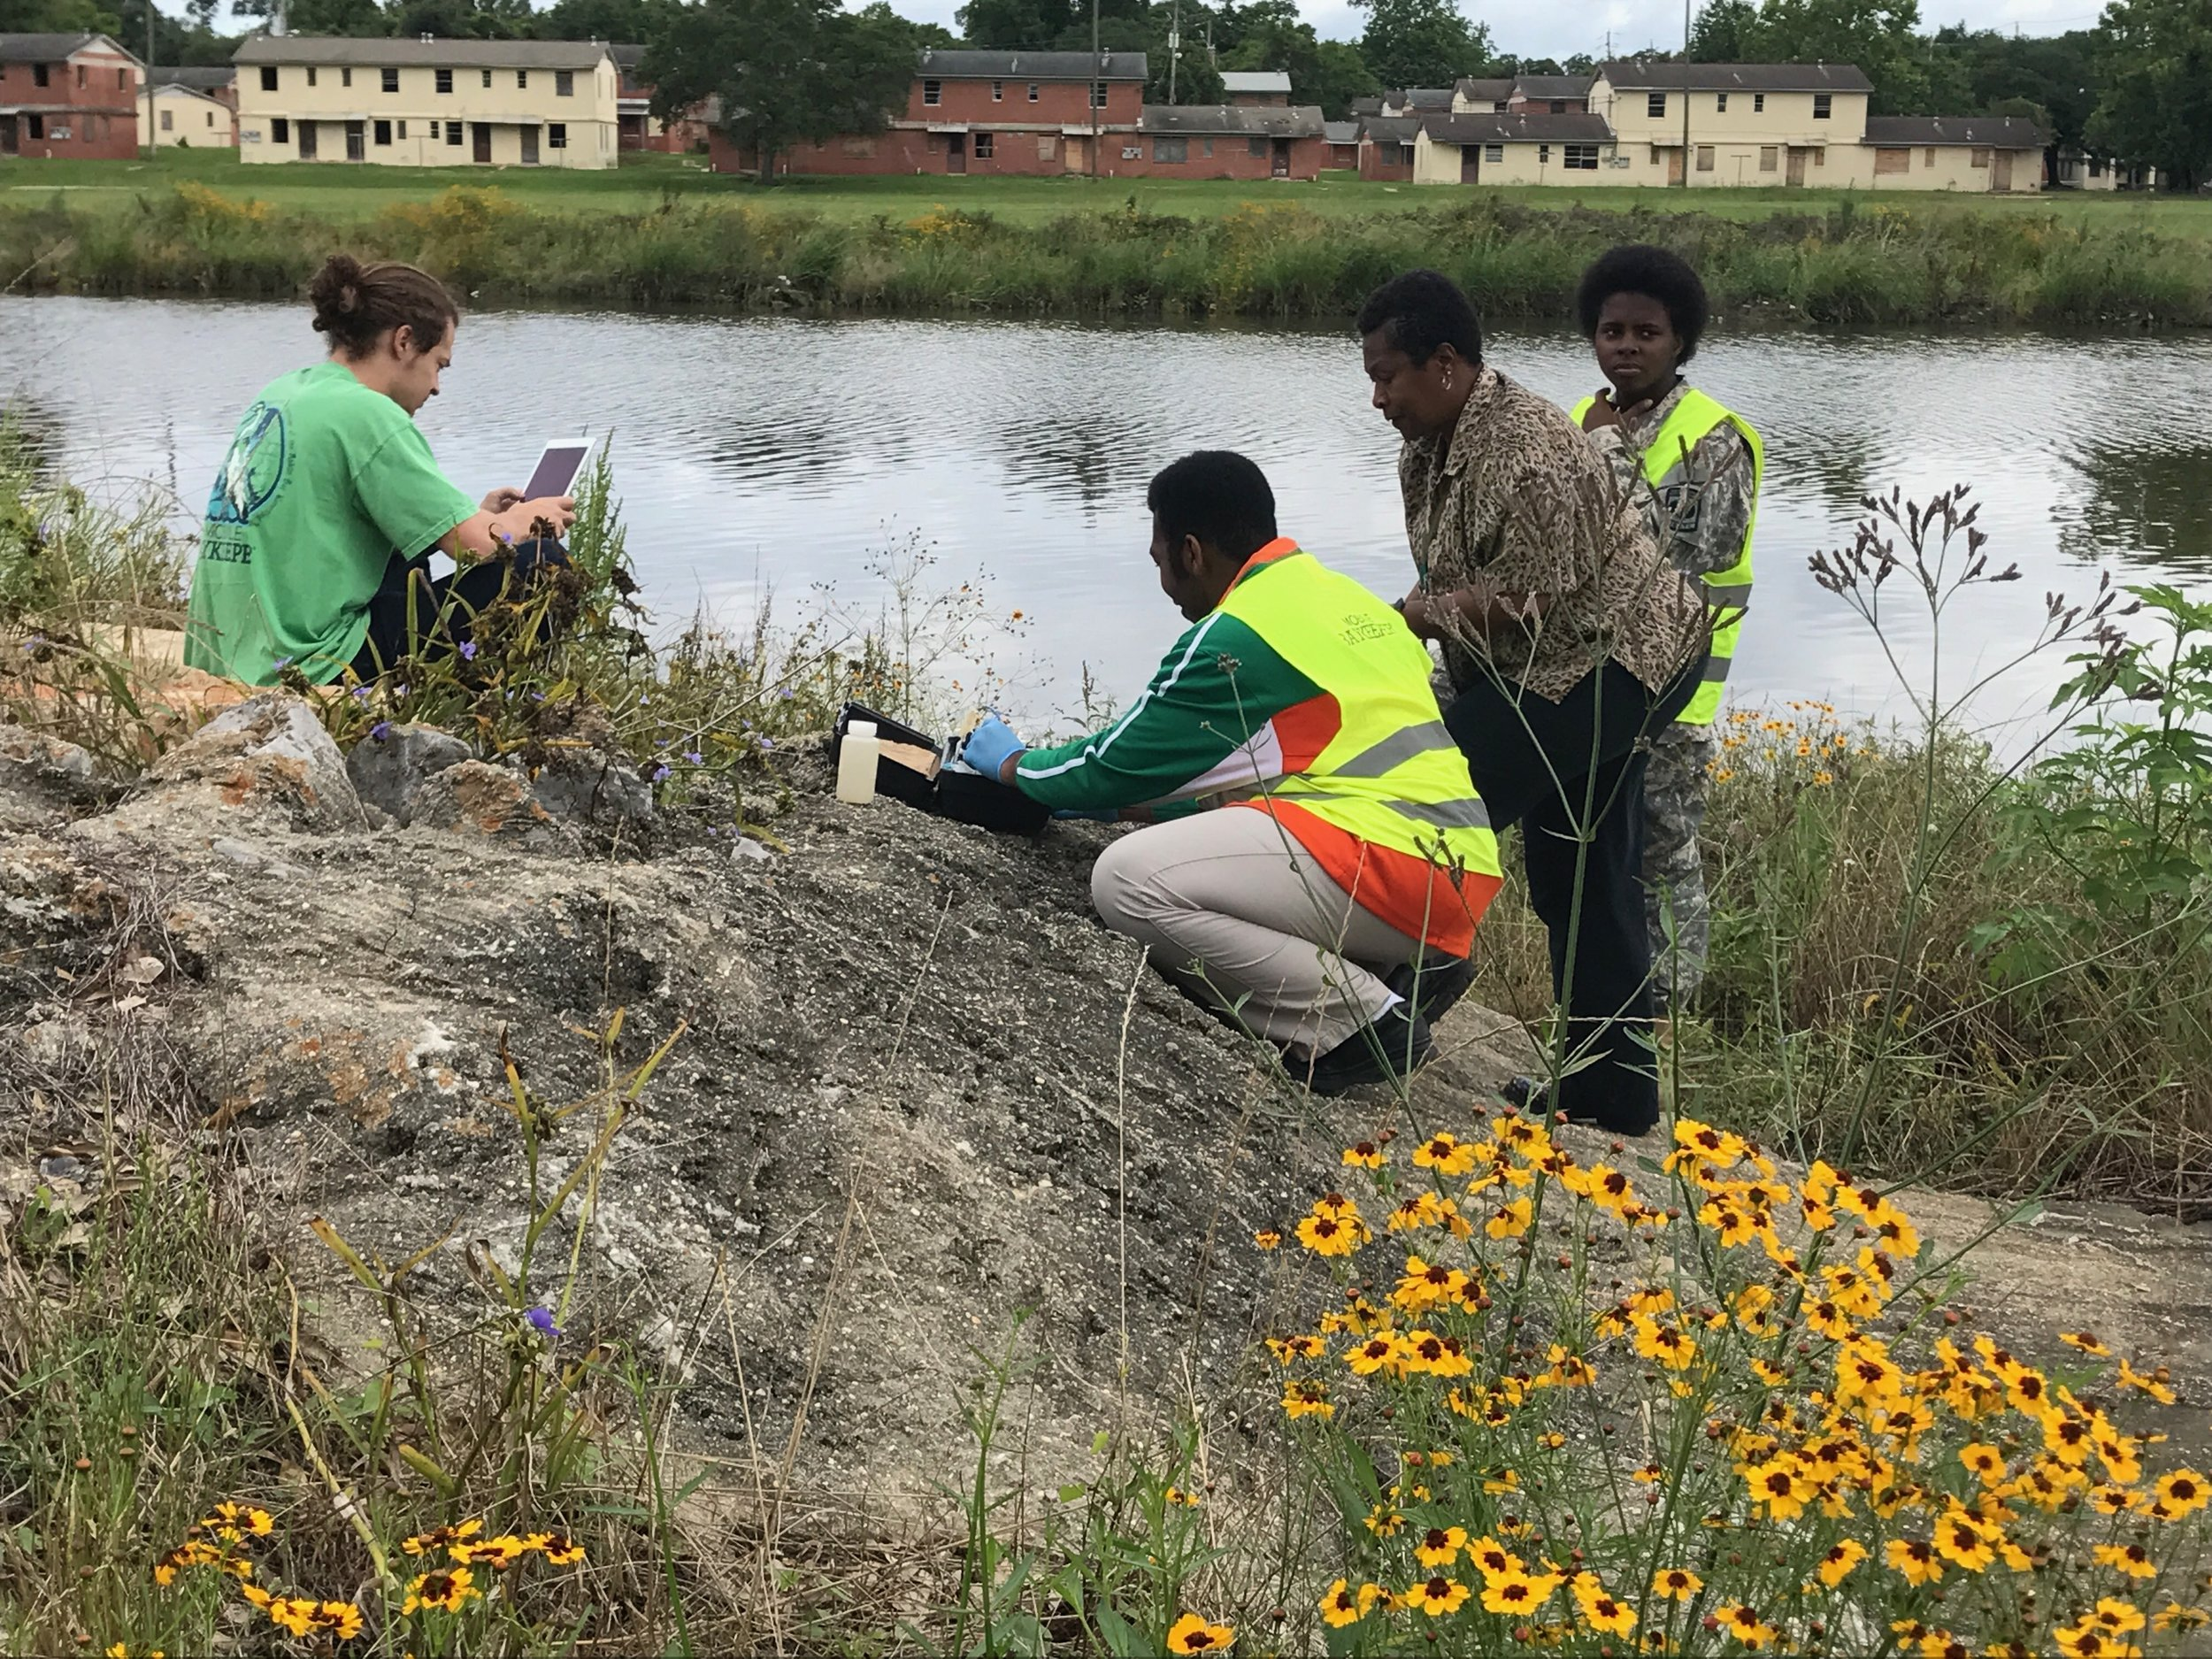 Students from LeFlore High School test the water quality along Three Mile Creek with guidance from Program Director Cade Kistler.